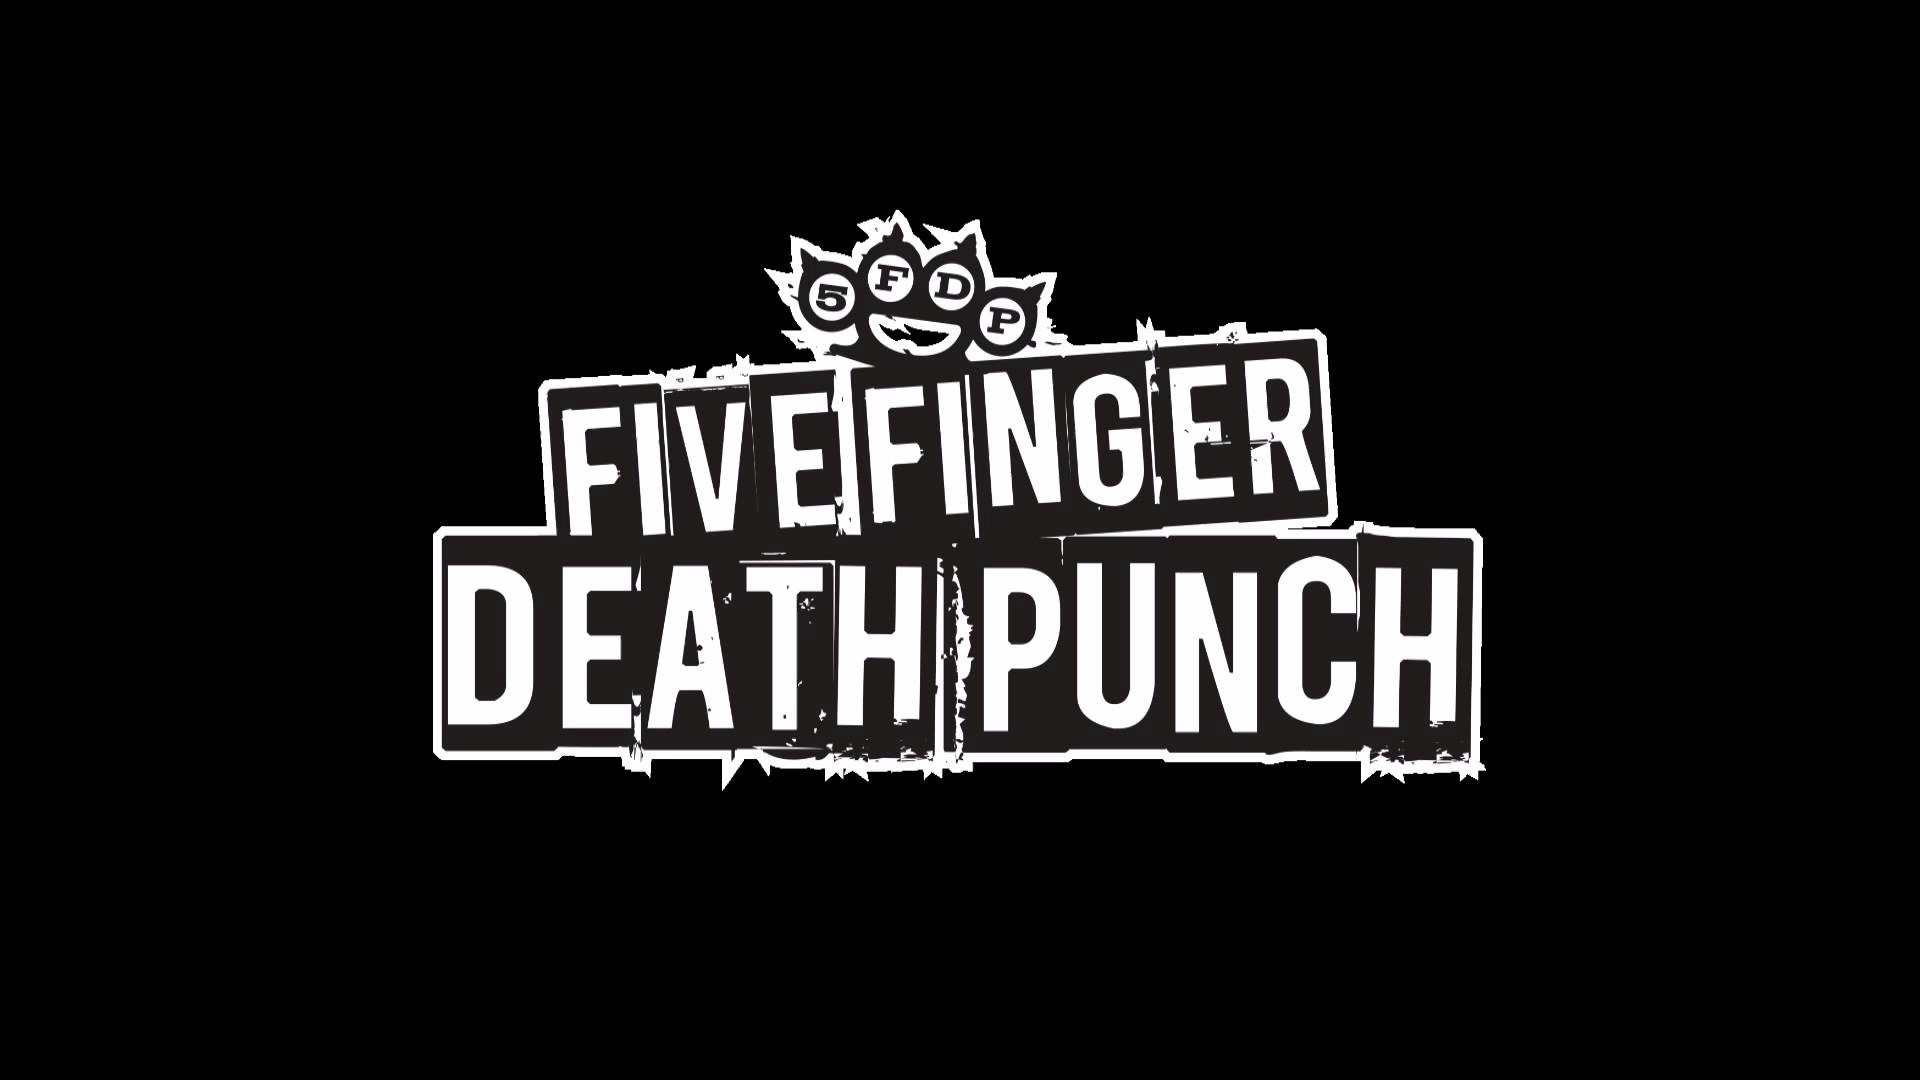 1920x1080 Five Finger Death Punch - The origin of Jekyll and Hyde